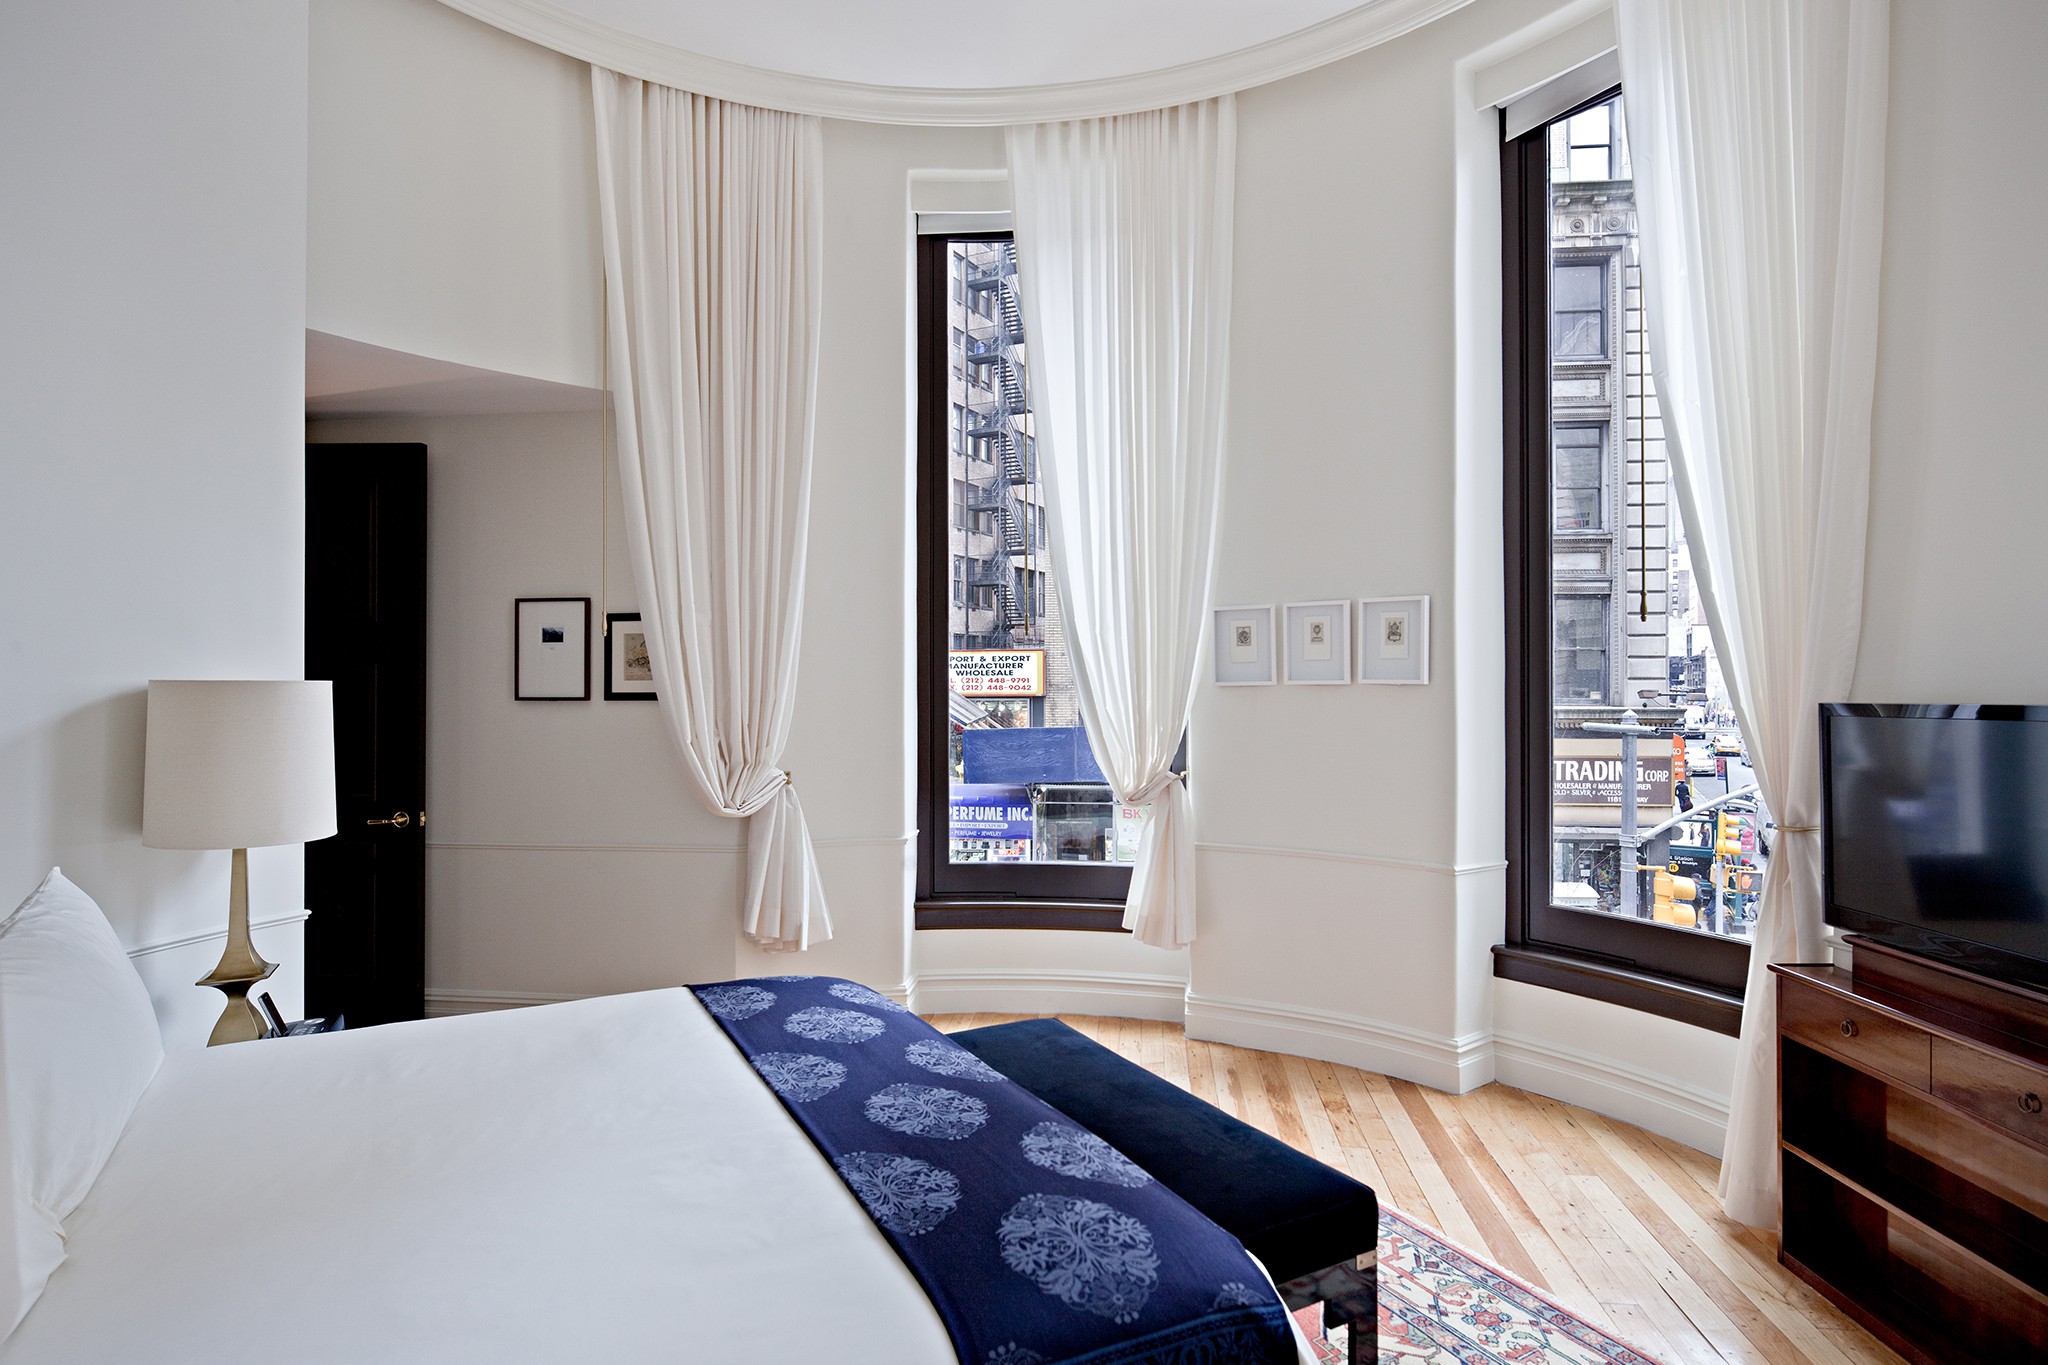 Best Hotels Near Madison Square Garden. 1. NoMad Hotel. NoMad Hotel Nice Look